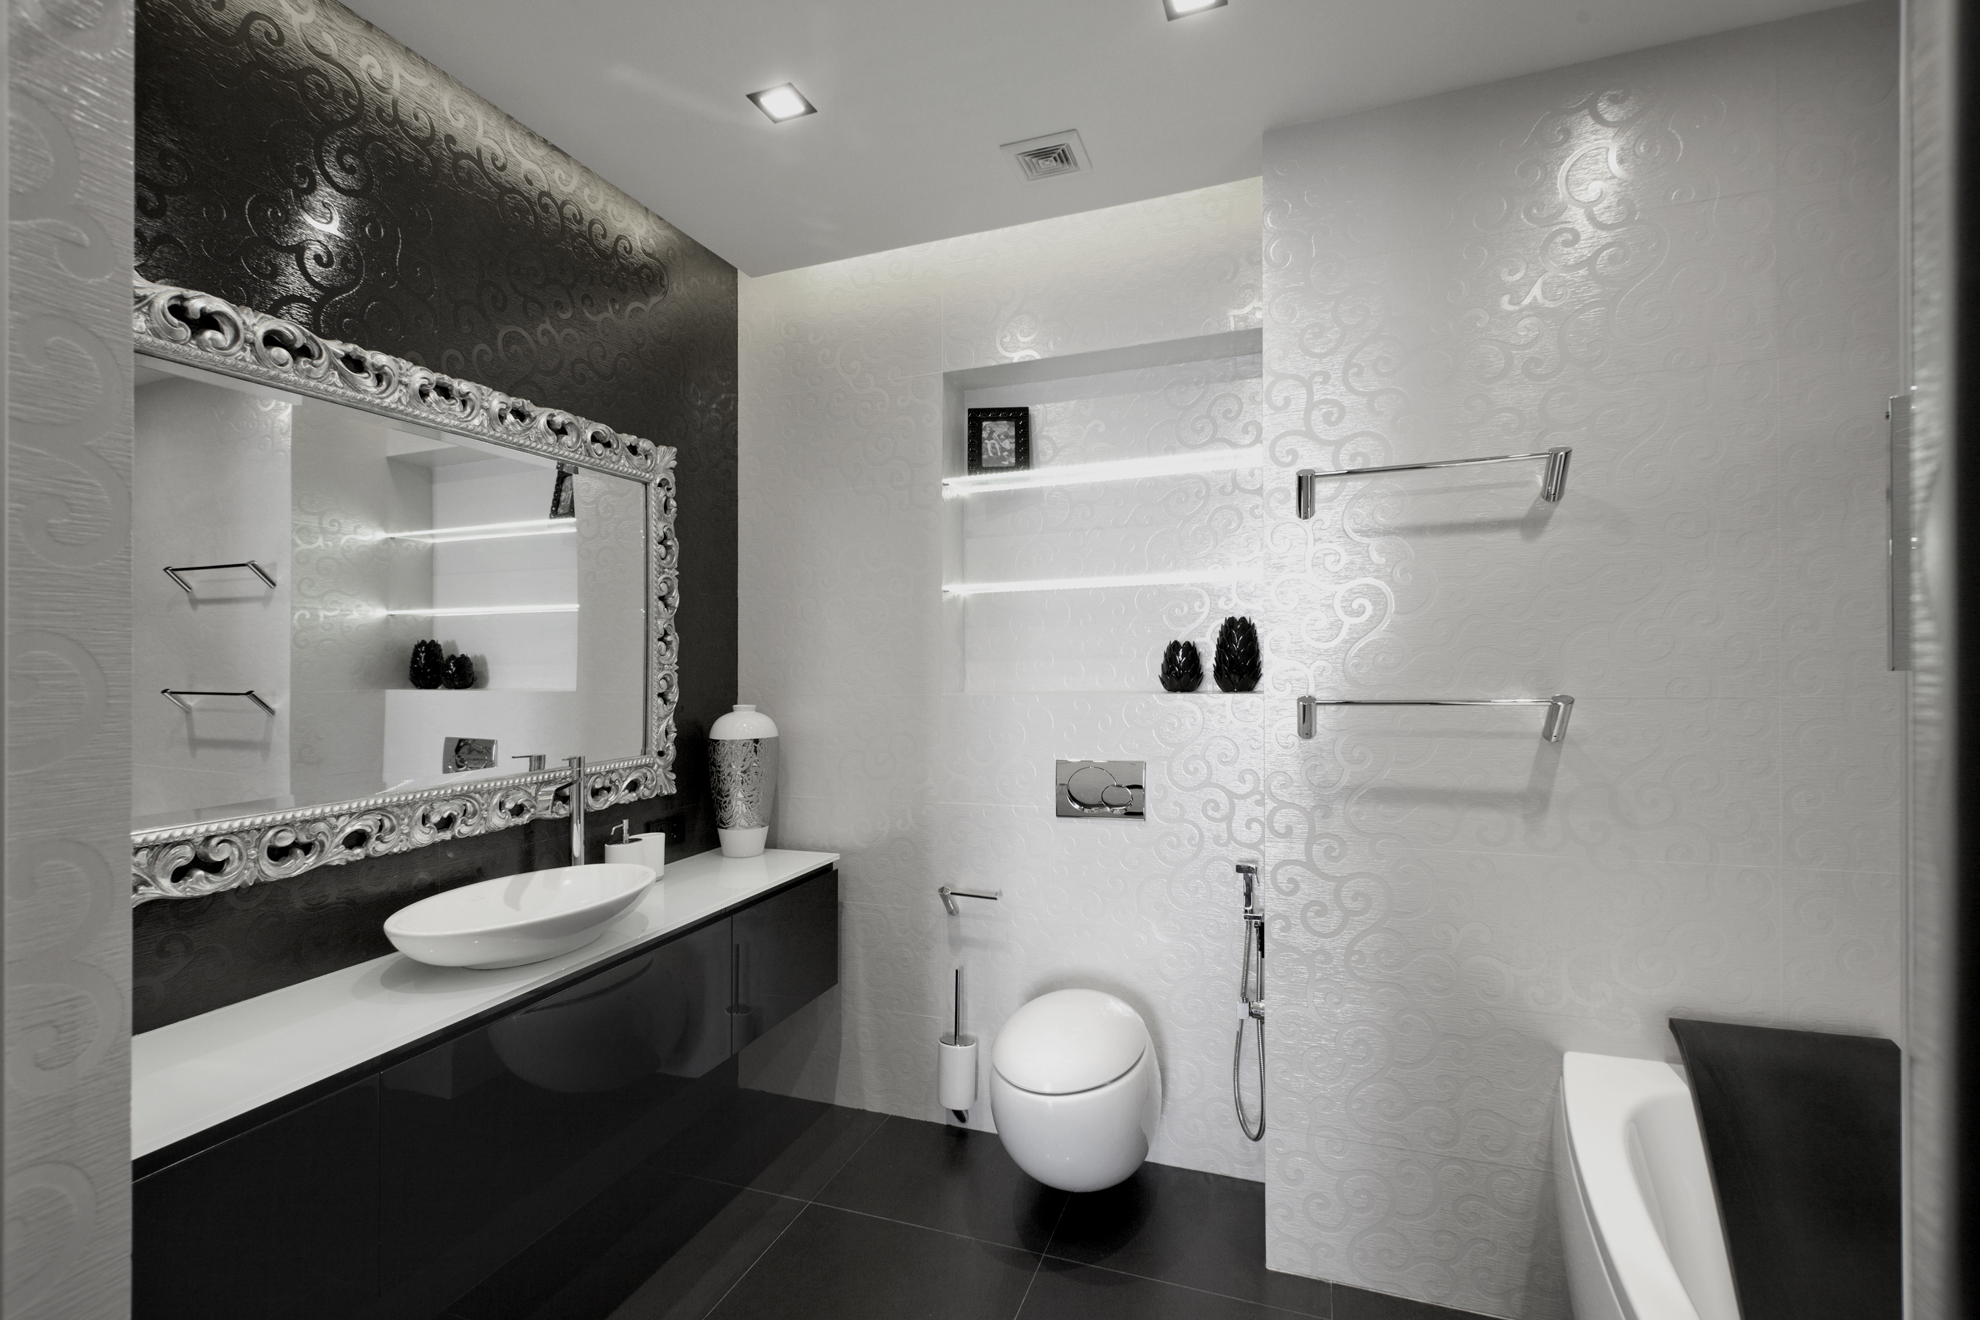 Black and white bathroom walls - Black And White Bathroom Ideas Tiled